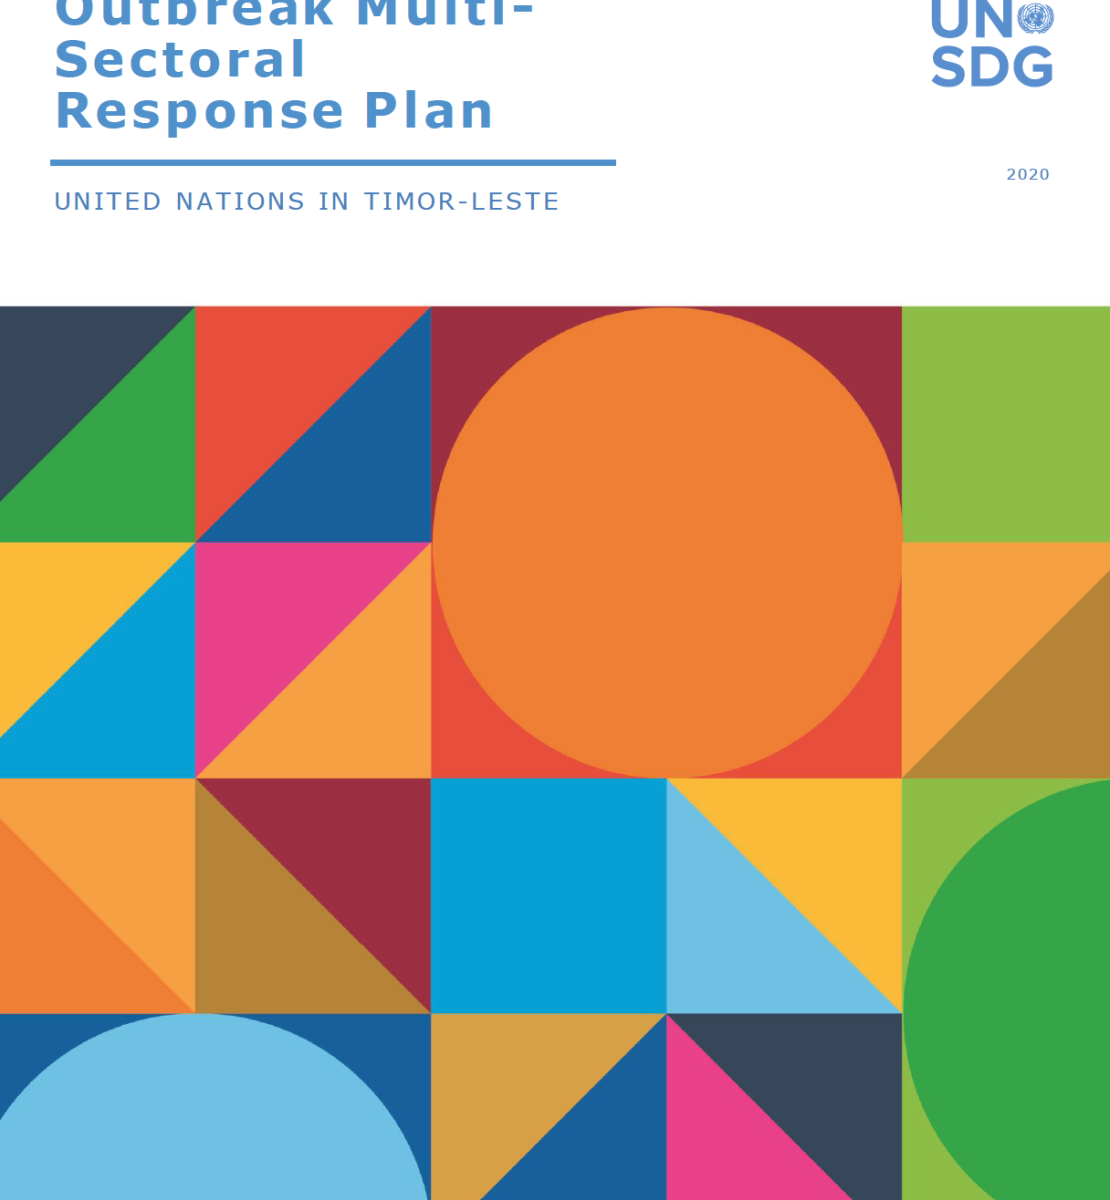 """Cover shows the title """"UN Timor-Leste: COVID-19 Outbreak Multi-Sectoral Response Plan April to September 2020"""", over colorful triangles and dots"""